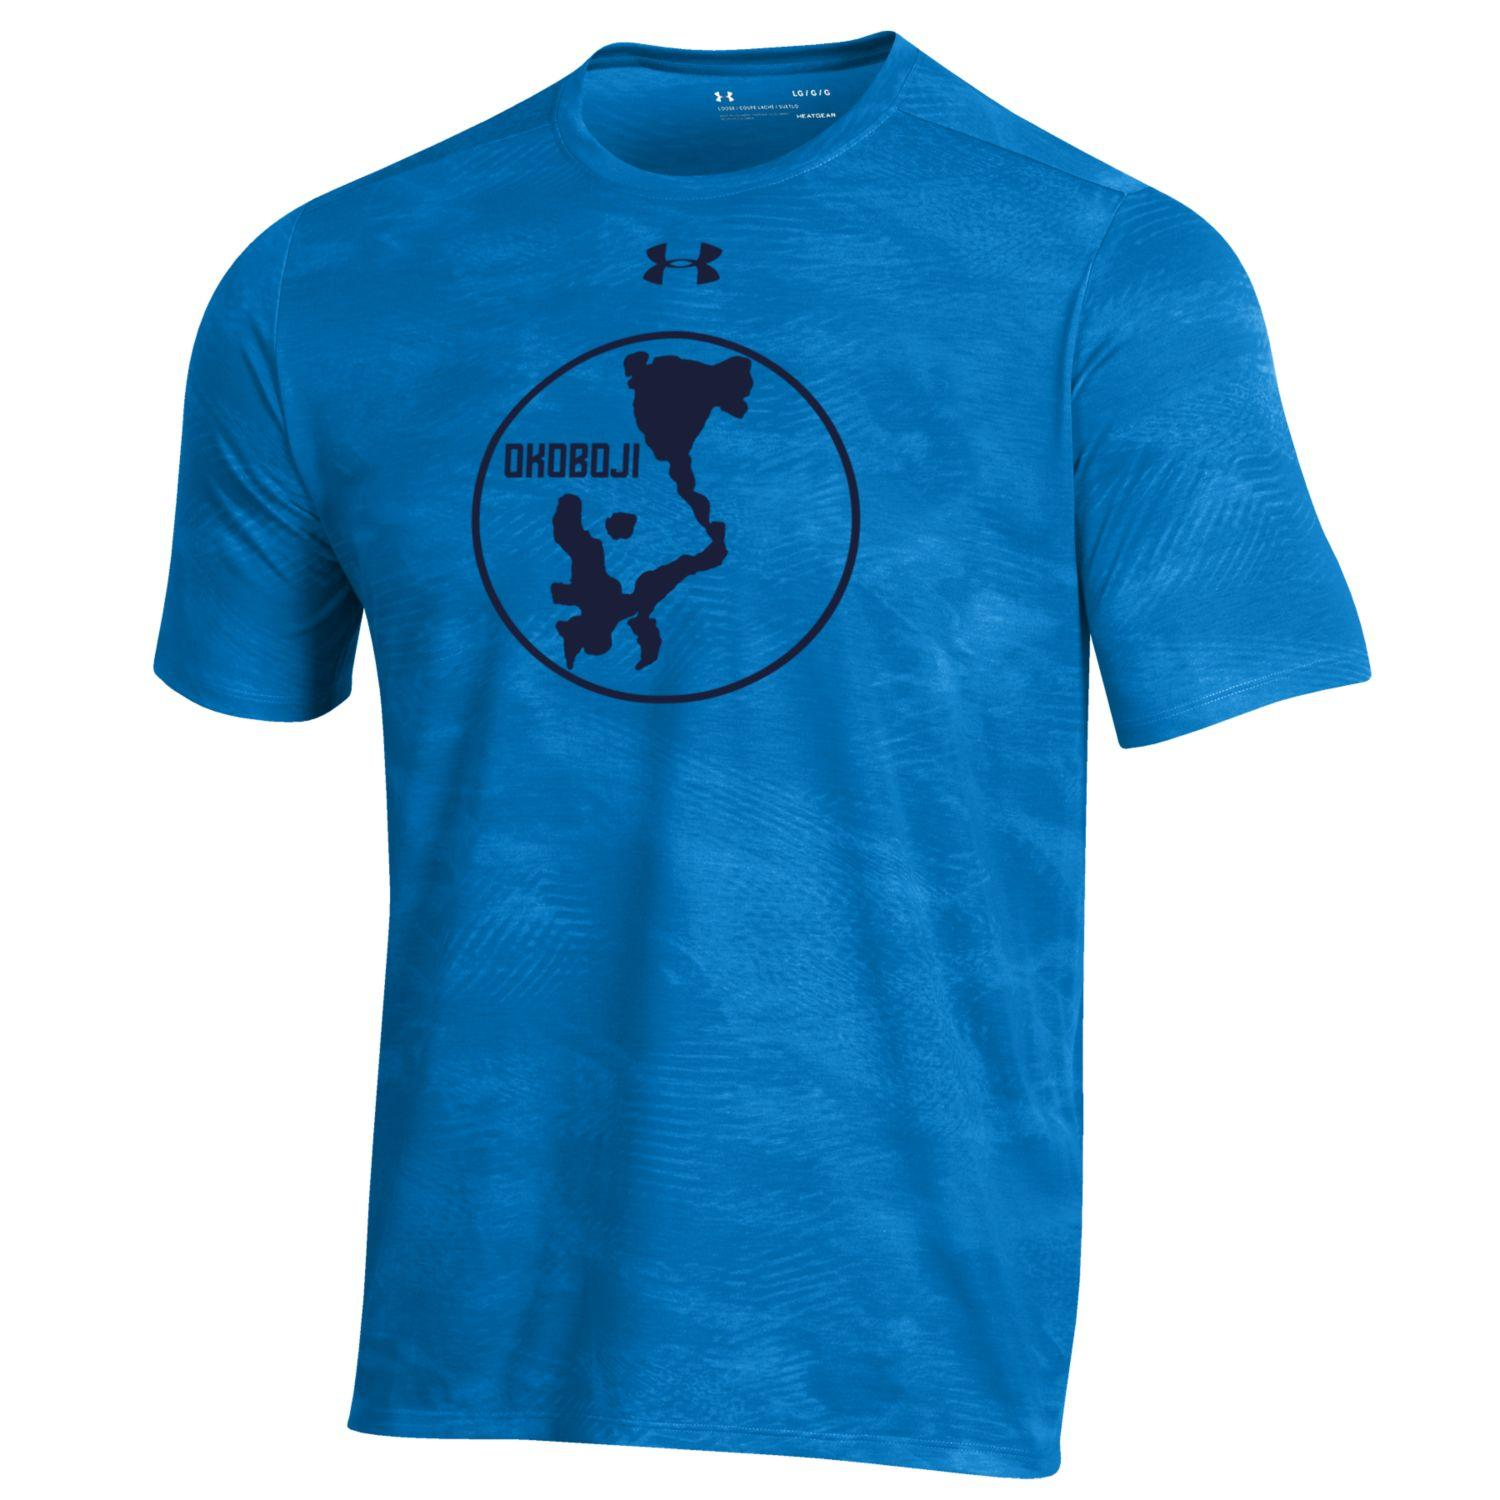 Okoboji Tech Helix Wetprint Tee - Powder Keg Blue